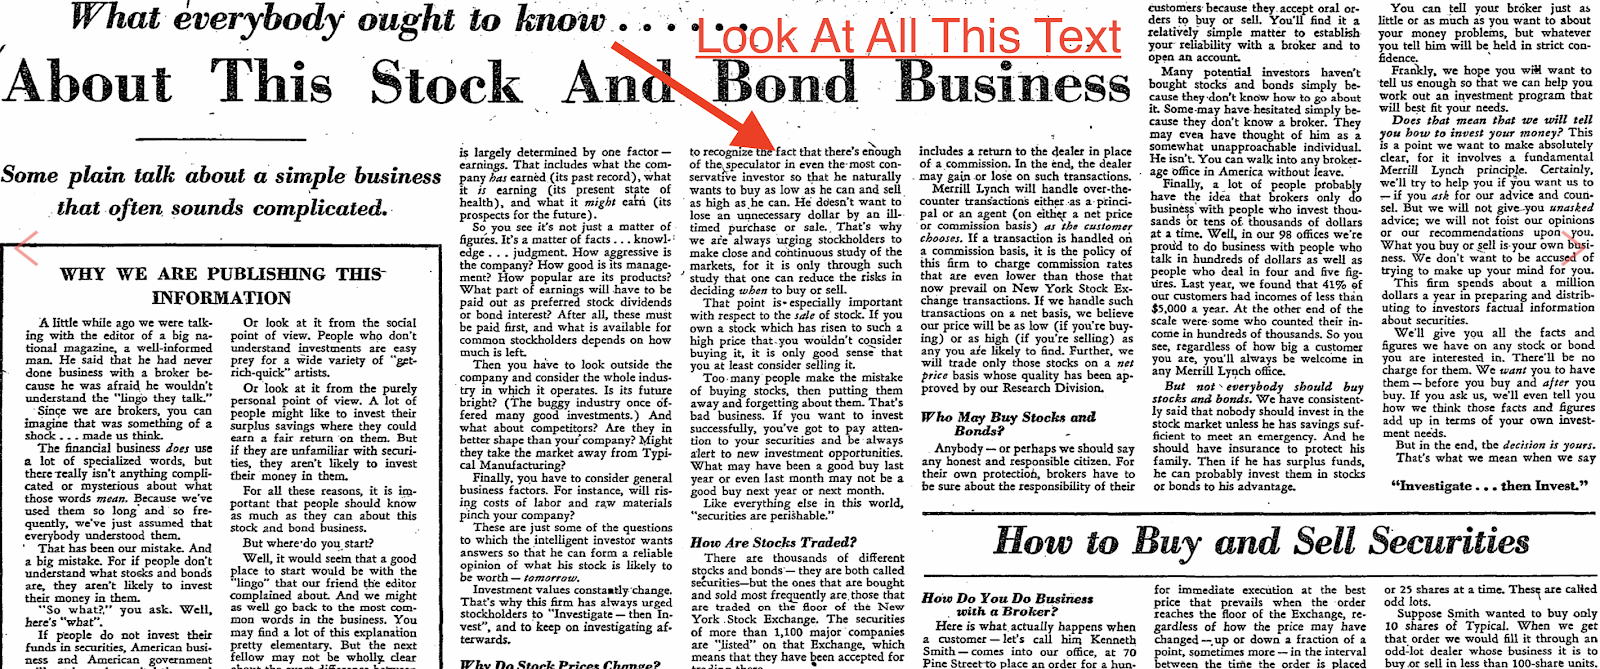 An-advertisement-talking-about-stocks-and-bonds